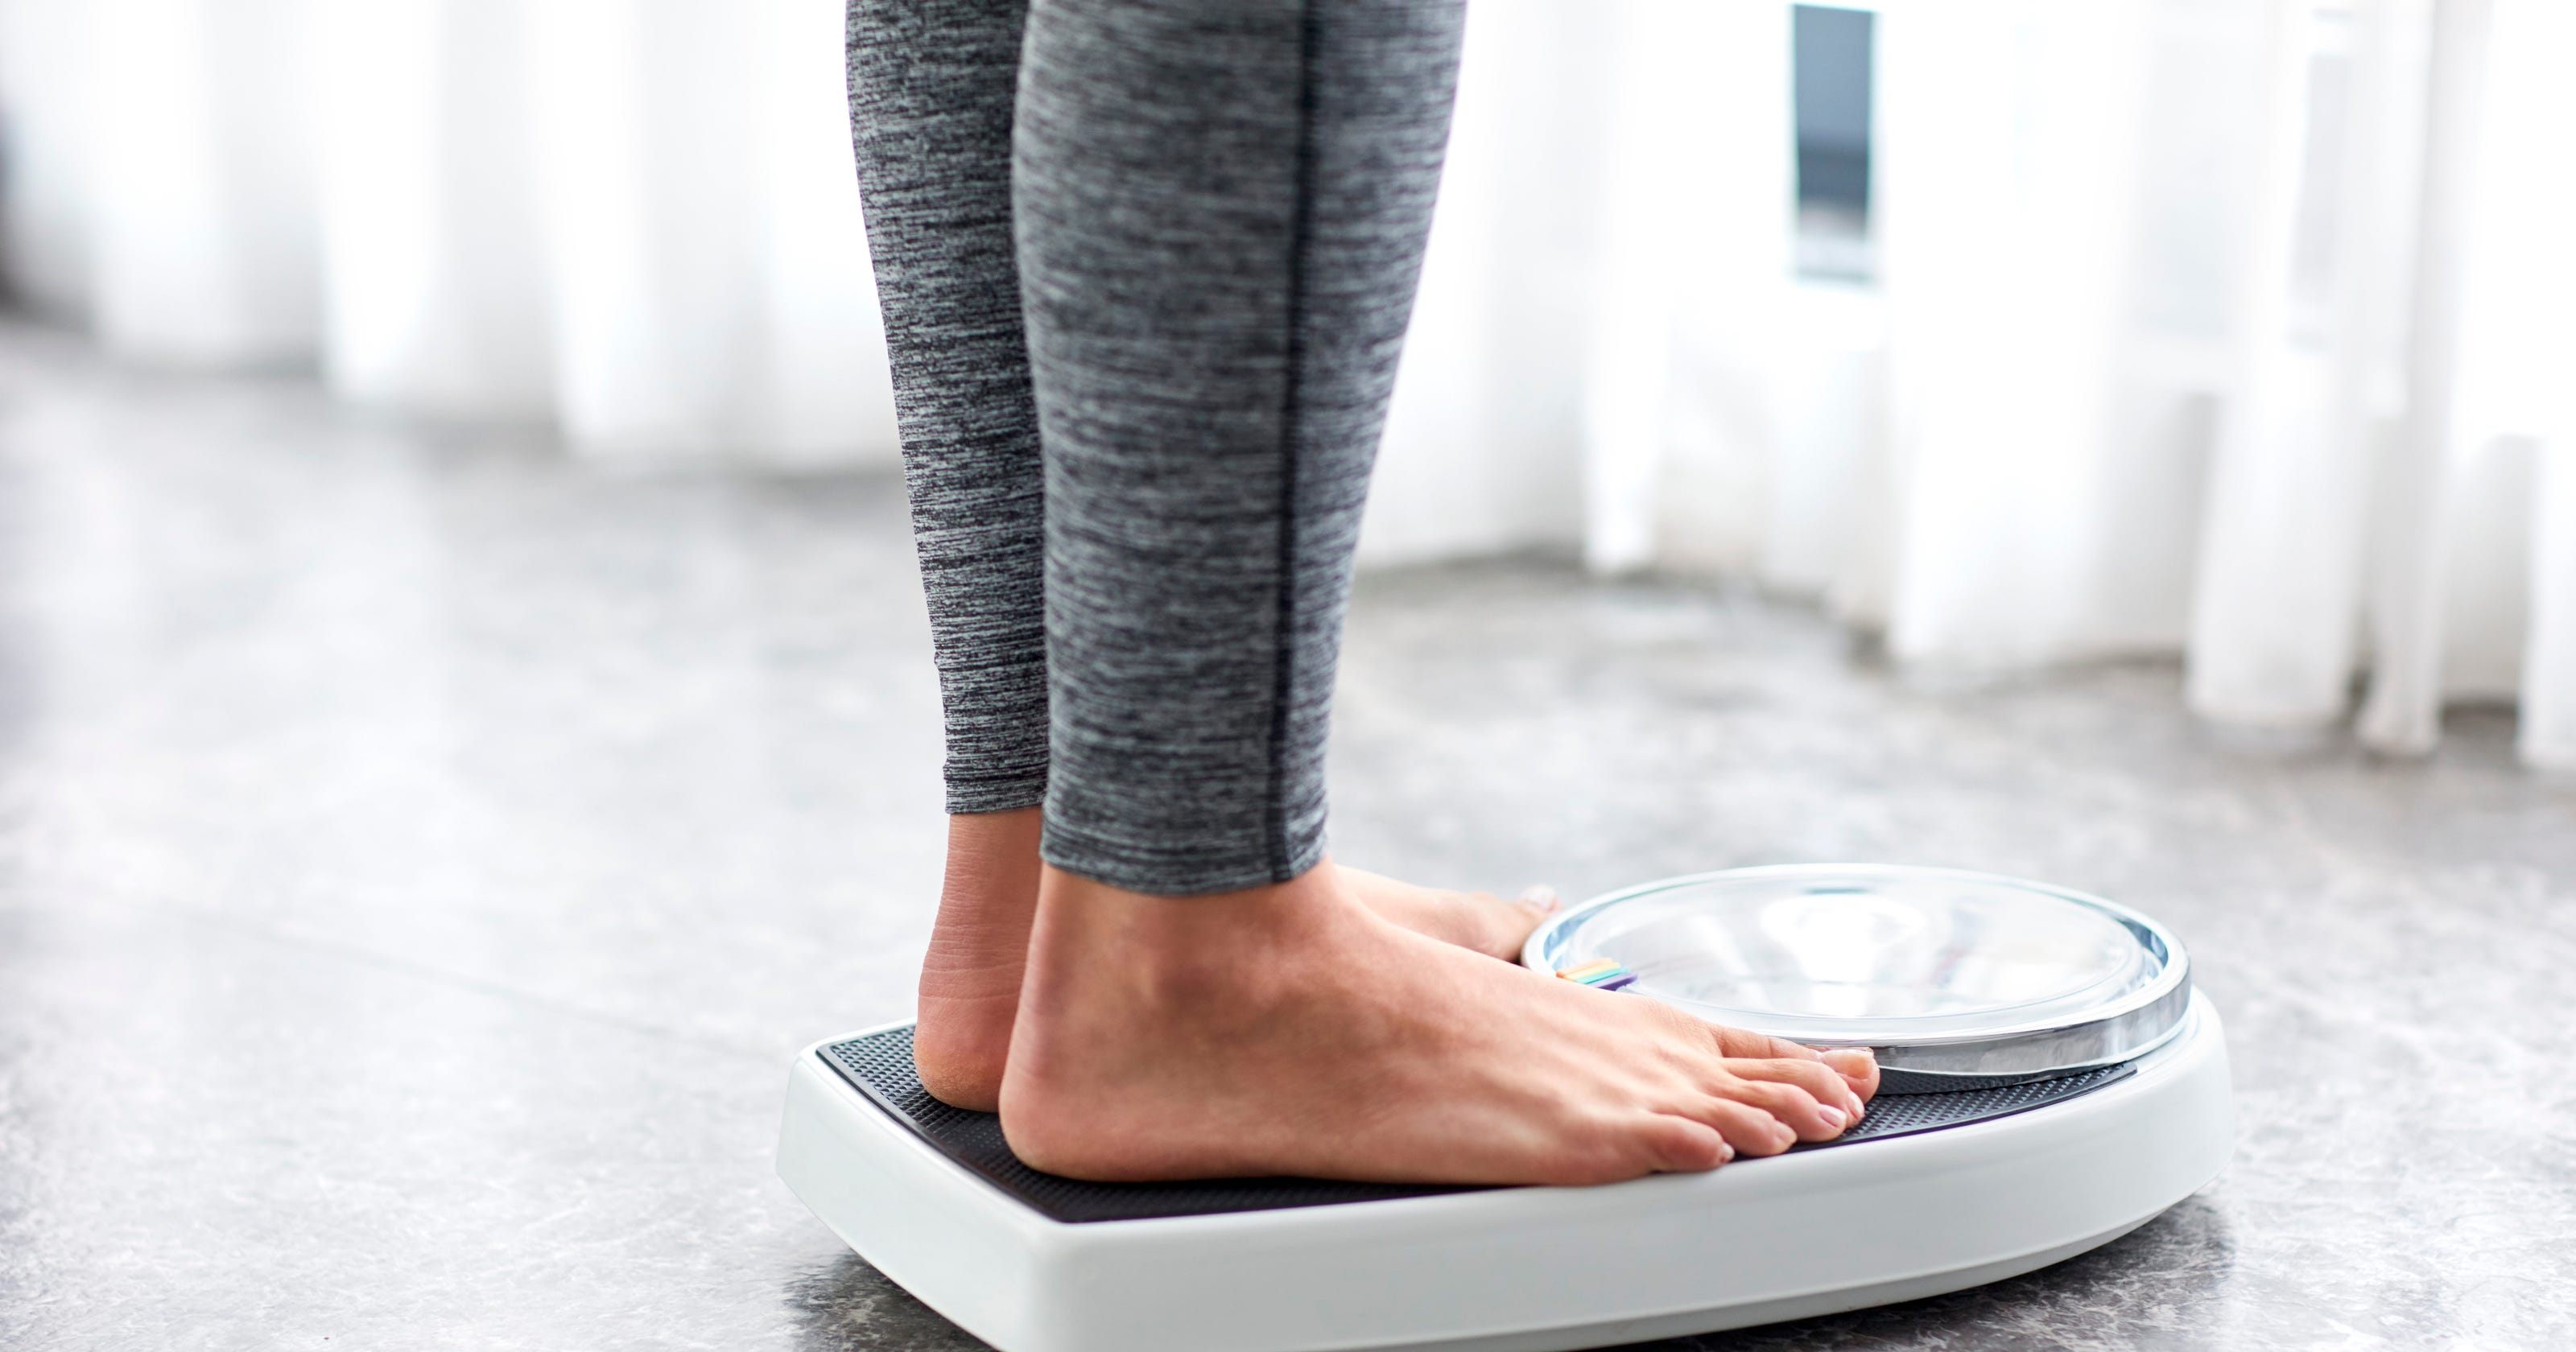 Weight loss 2019: Weight Watchers, Jenny Craig top picks for